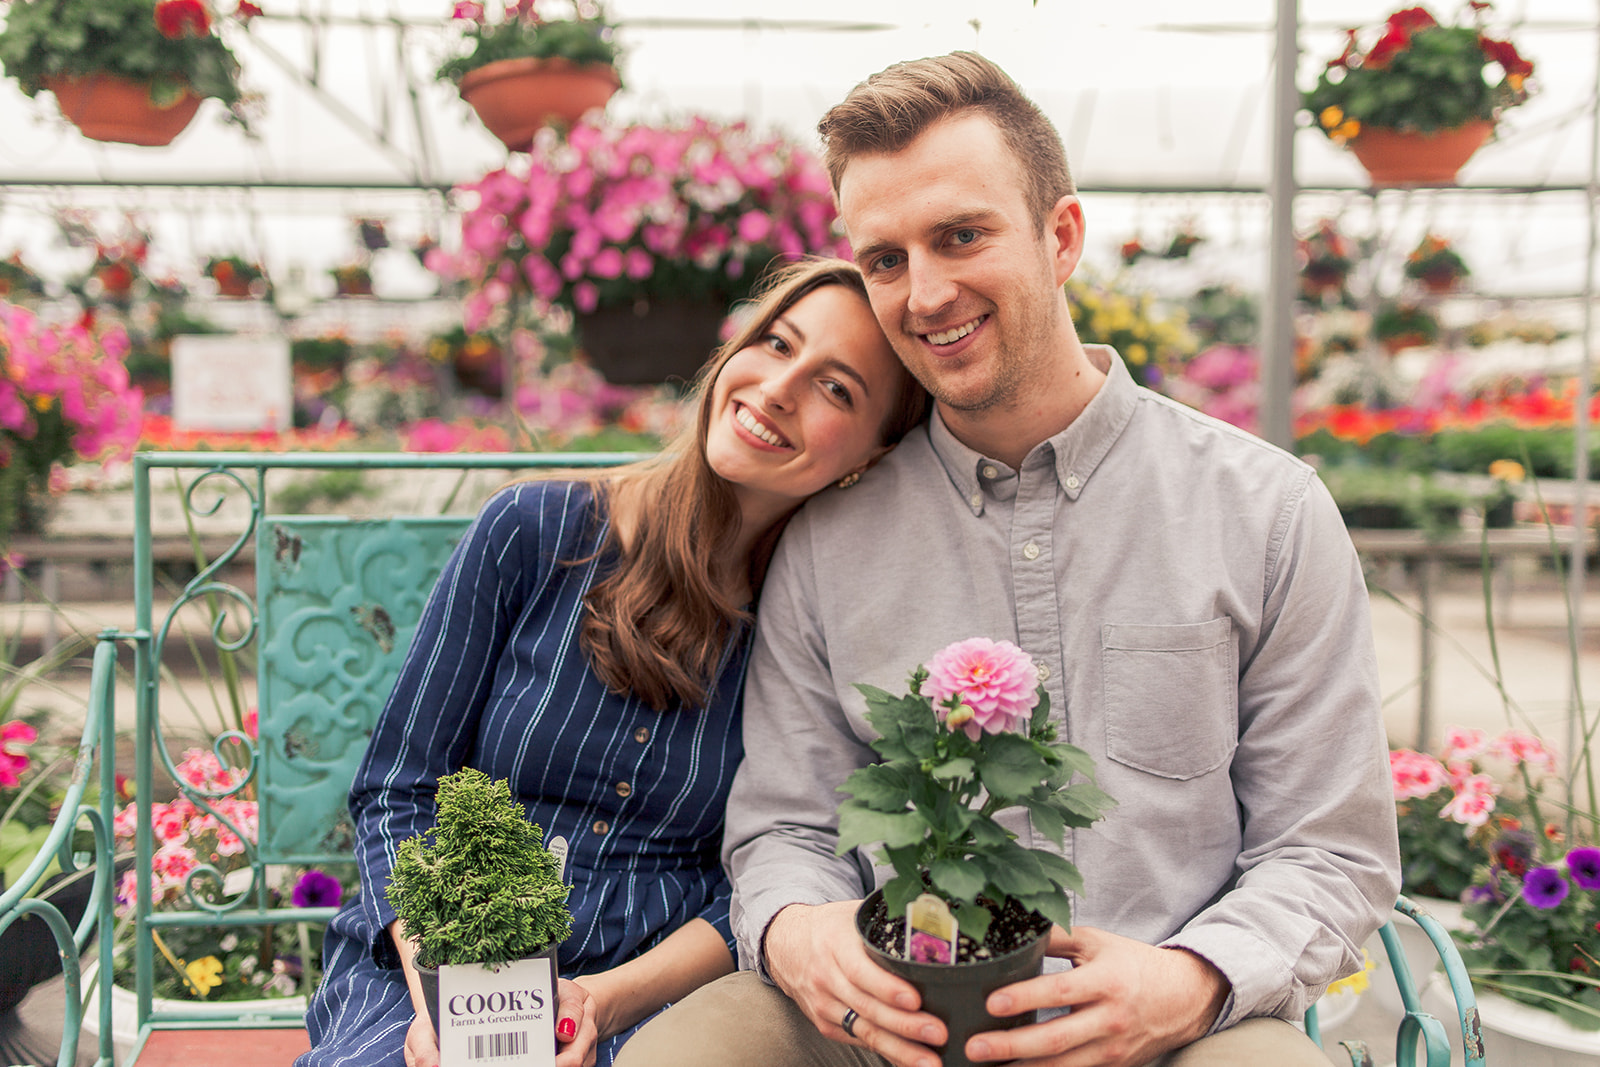 Cook's Greenhouse, greenhouse engagement photos, spring engagement photos, relaxed engagement photos, candid engagement photos, Forge Jewelry